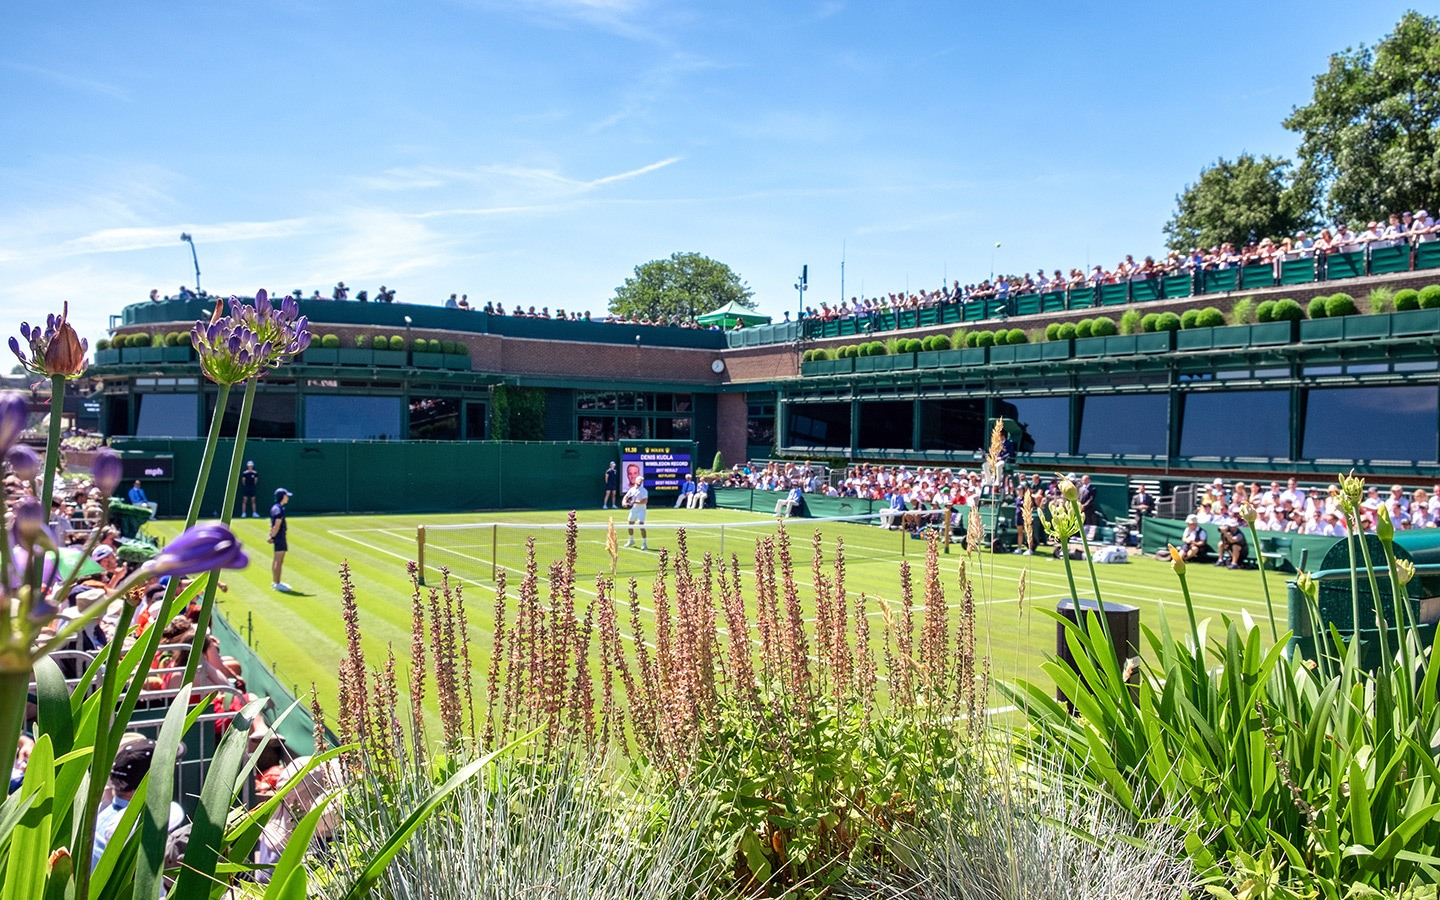 Players on the court at Centre Court at Wimbledon